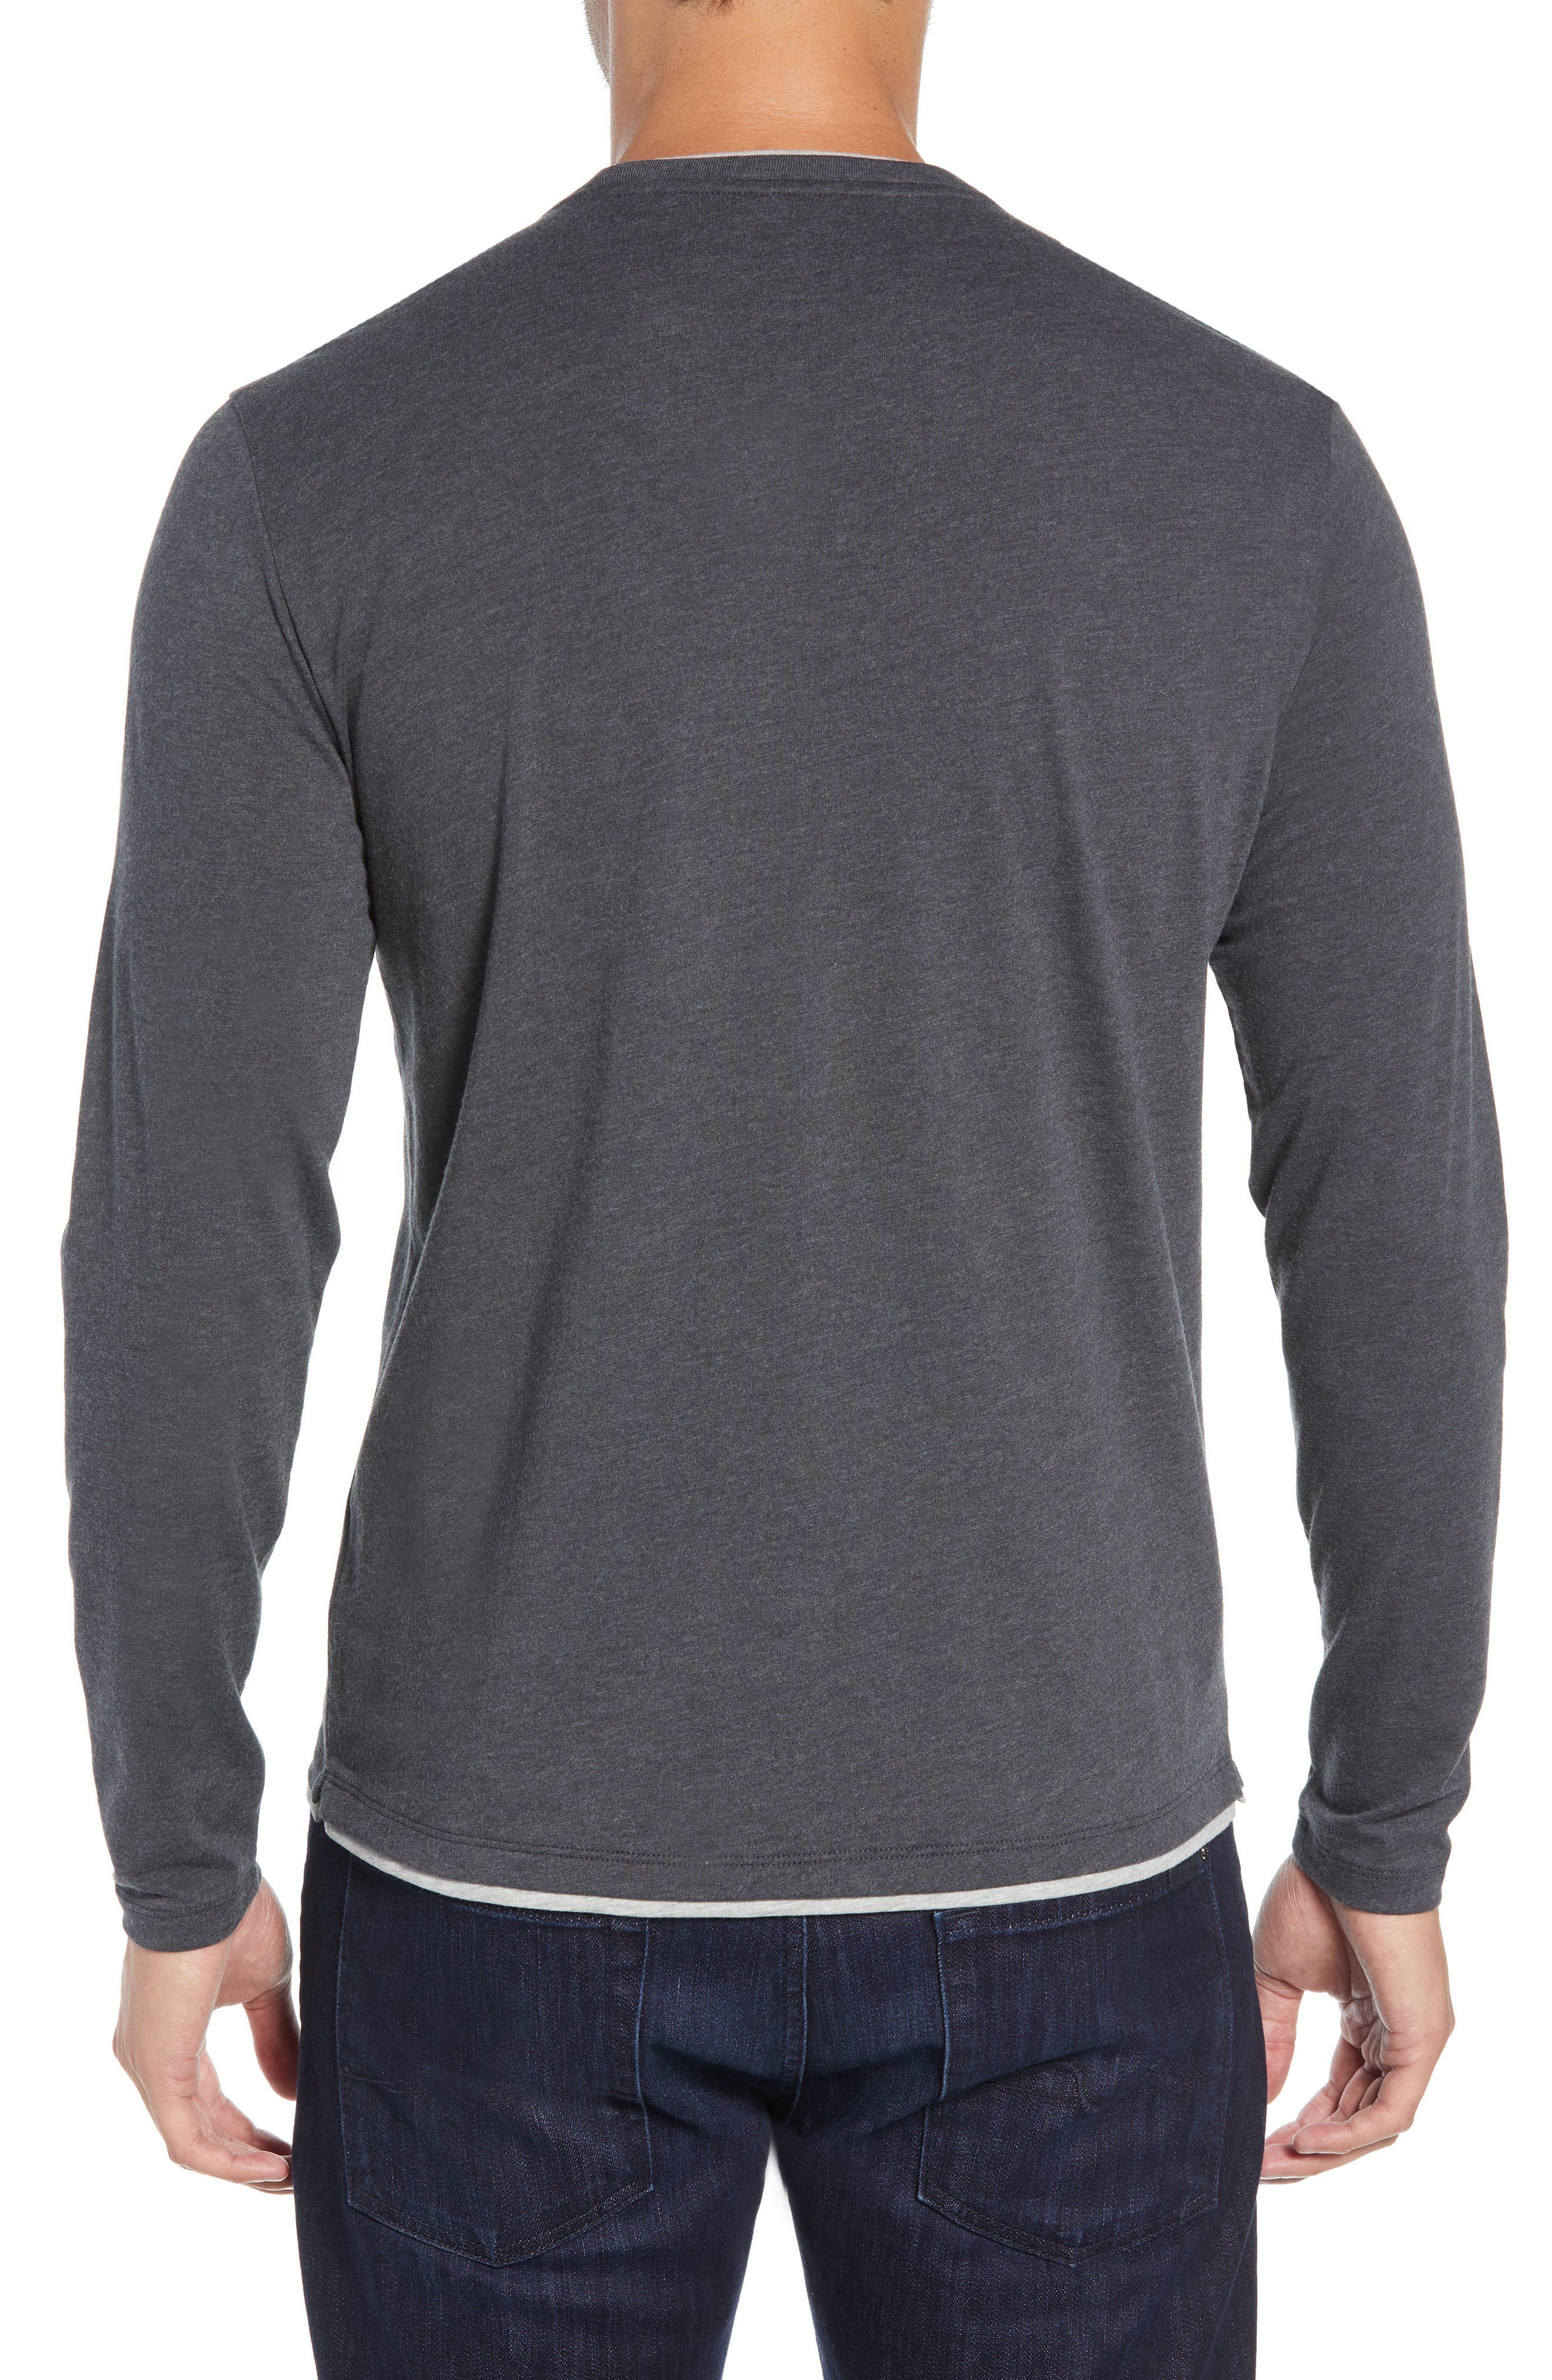 Halifax Long Sleeve Crewneck T-Shirt,                             Alternate thumbnail 2, color,                             TITANIUM